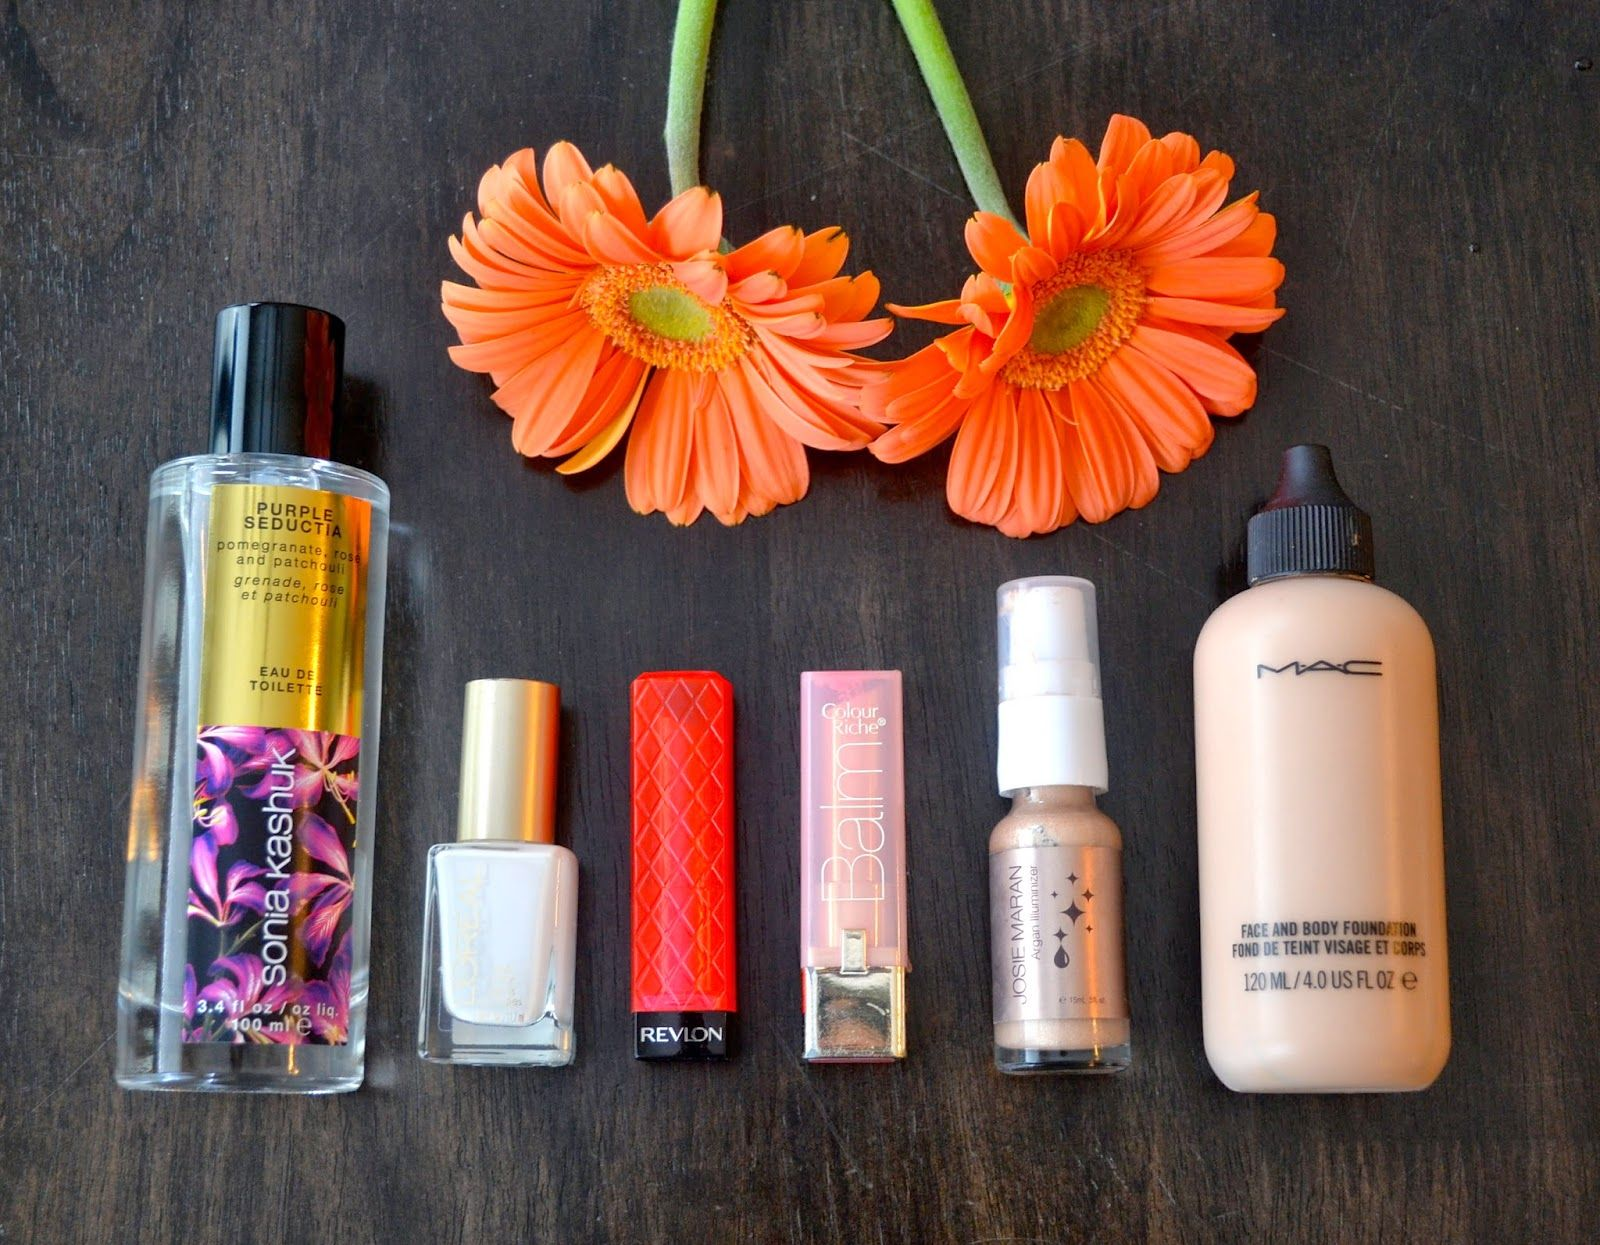 5 must have spring beauty products 1. fragrance, 2